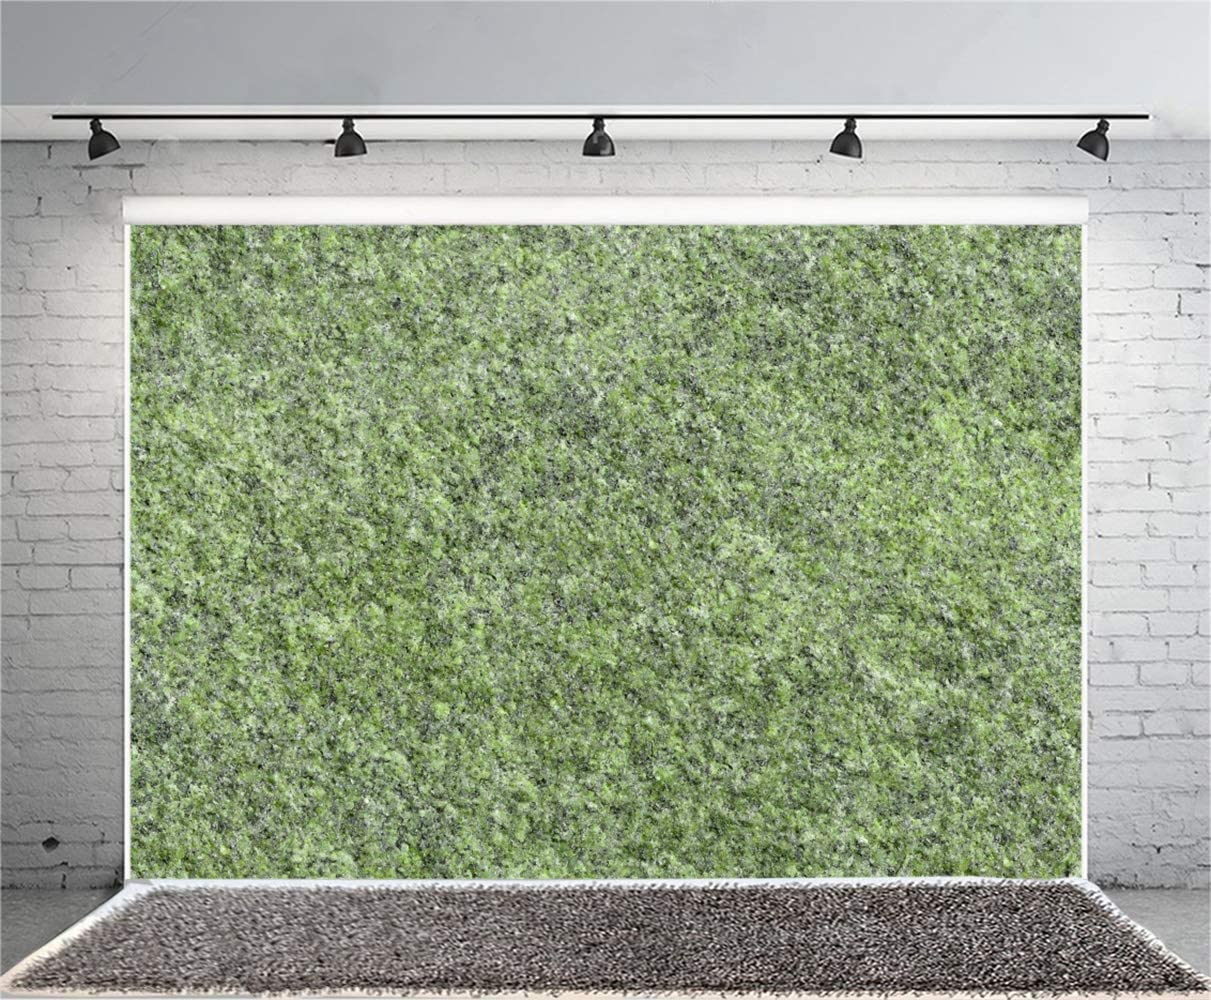 GoEoo 10x7ft Grunge Abstract Mossy Marble Texture Wall Vinyl Photography Background Rustic Mineral Wall Backdrops Child Kids Adult Pets Portrait Clothes Product Shoot Studio Photo Props